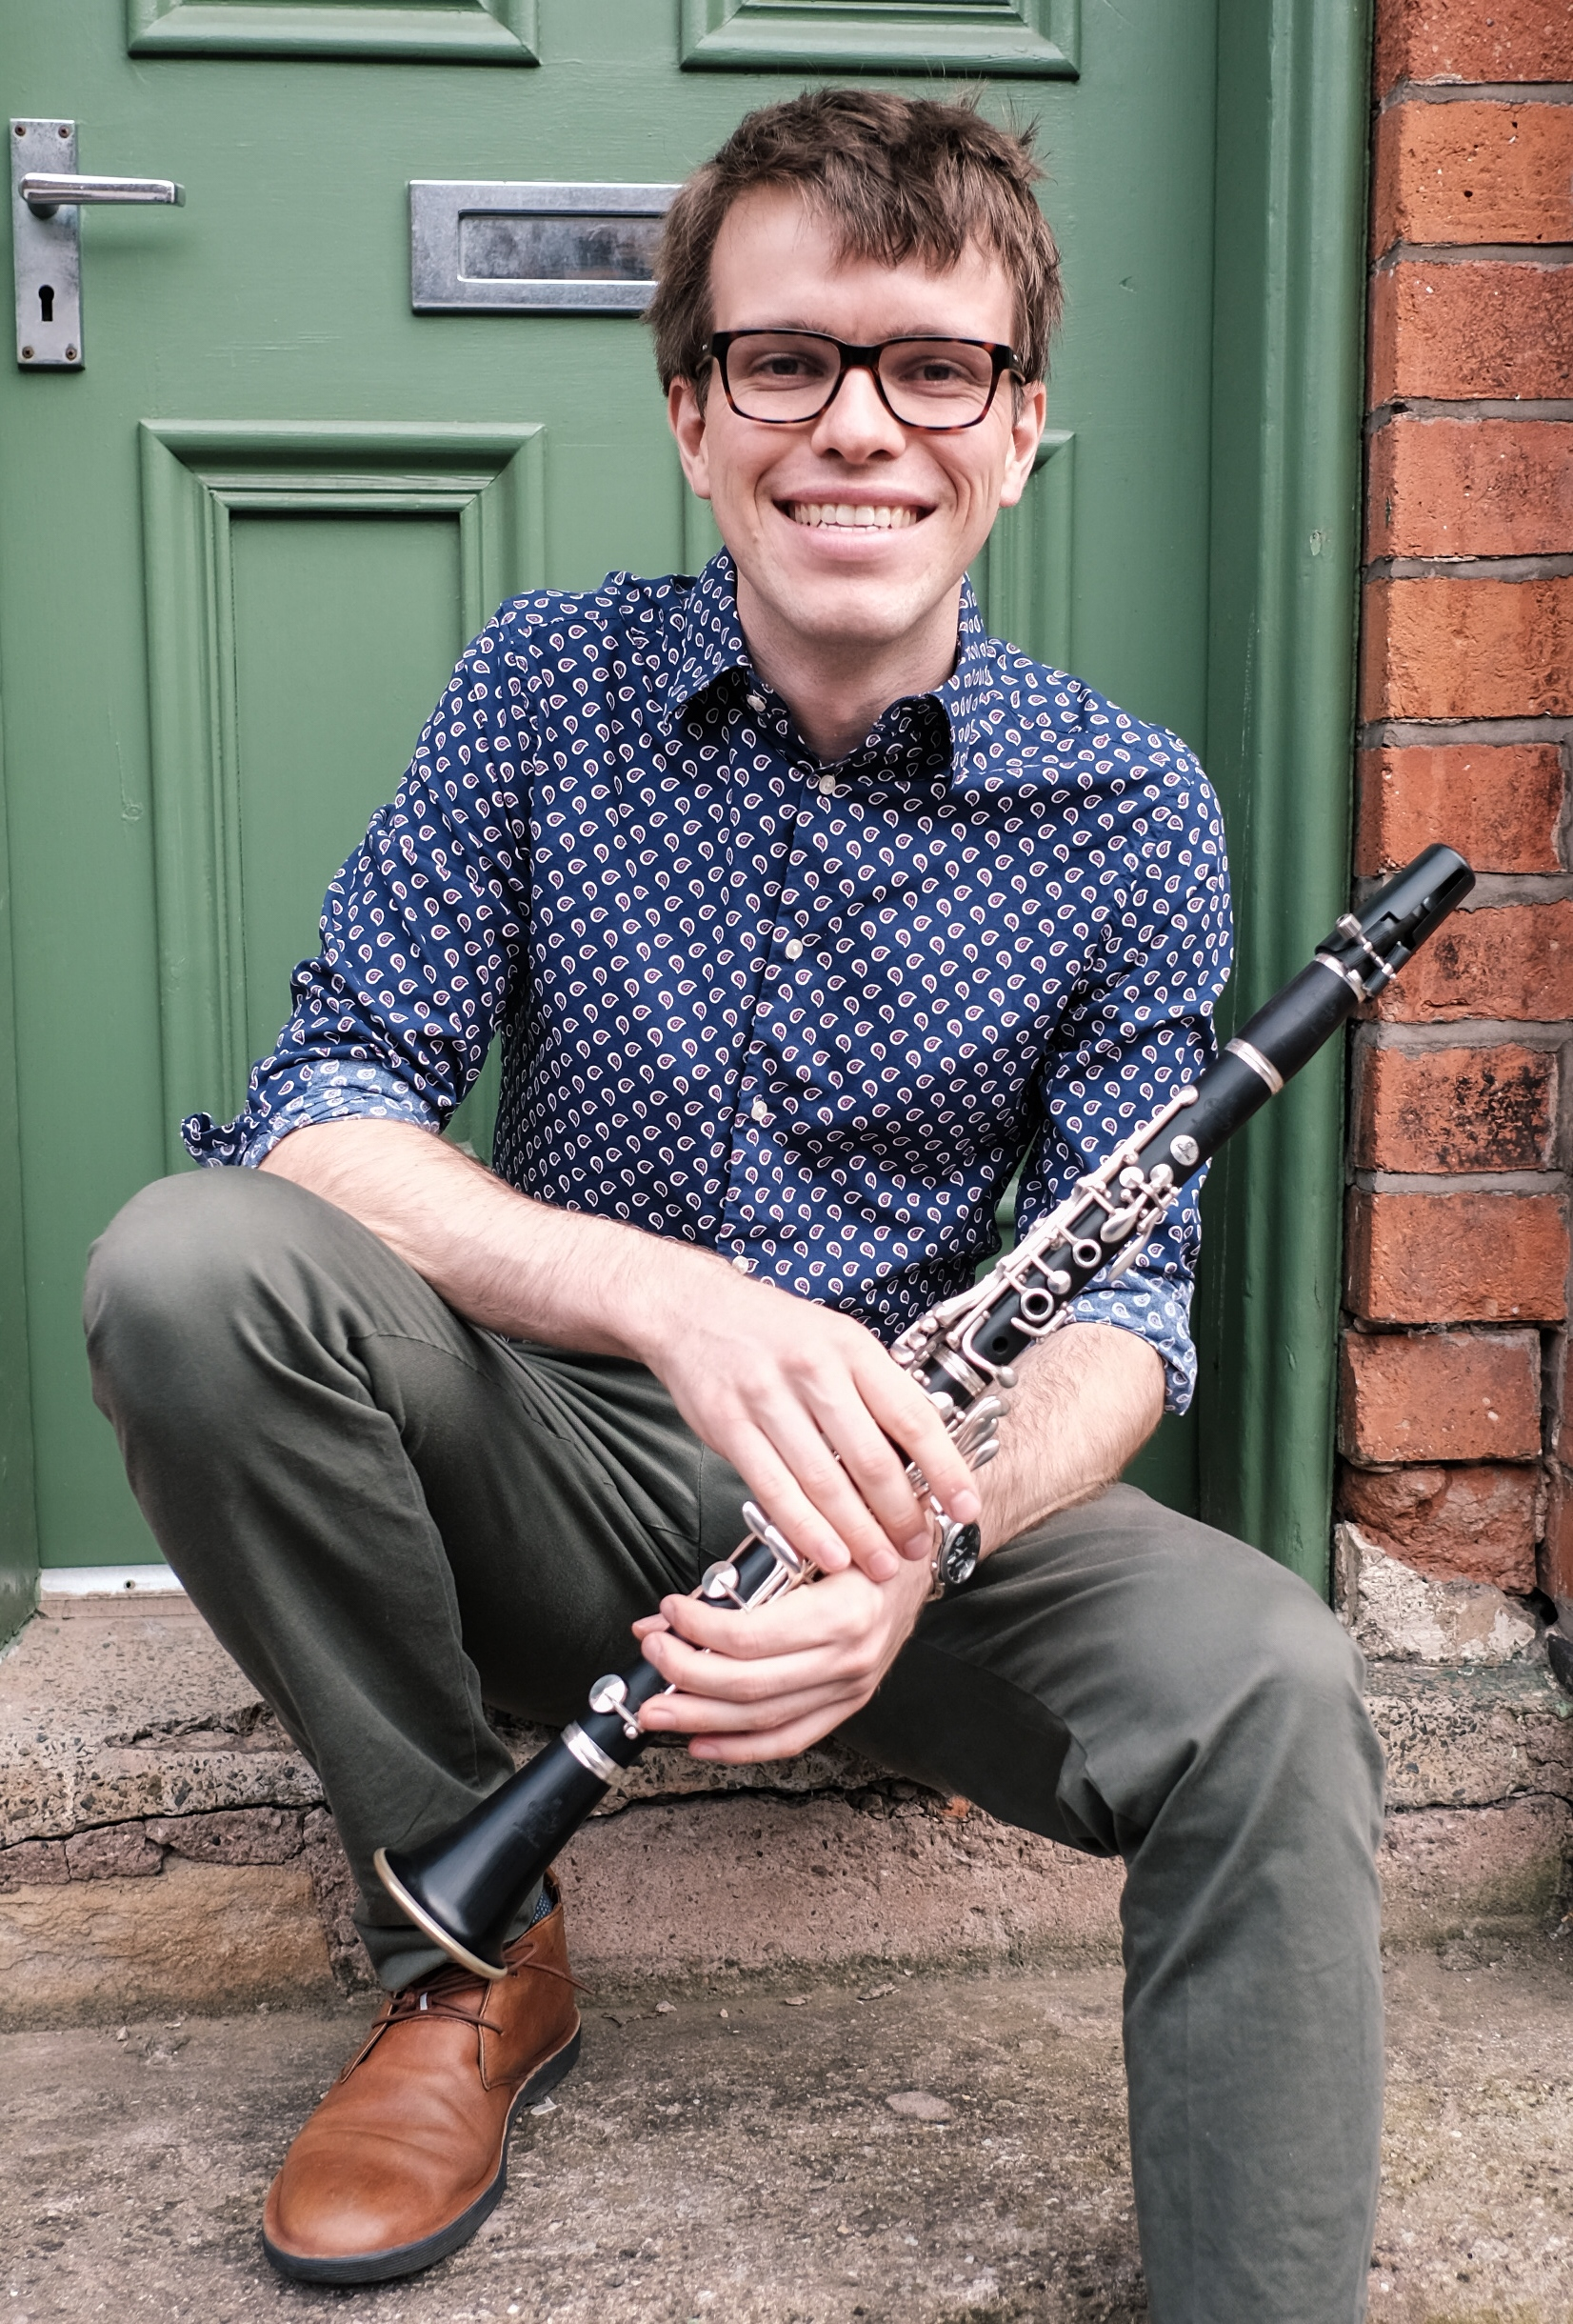 Luke Newby - After completing an undergraduate degree at the University of the Witwatersrand in 2012, Luke moved to the UK and completed an MMus (Performance and Pedagogy) and MMus (Performance) studying with Jo Patton and Mark O'Brien. In 2017 Luke was awarded the Town Hall Symphony Hall prize as a member of the Verbunkos Trio. As an advocate of new music Luke has given several premieres in the UK and South Africa. He has performed as a guest artist with the BCMG NEXT scheme and always strives to perform challenging and exciting repertoire.Luke is also a passionate educator and workshop leader. He was the 2018/2019 Trainee Music Leader with Wigmore Hall Learning and has also worked on community projects with the Philharmonia Orchestra, Opera North and BBC Proms.